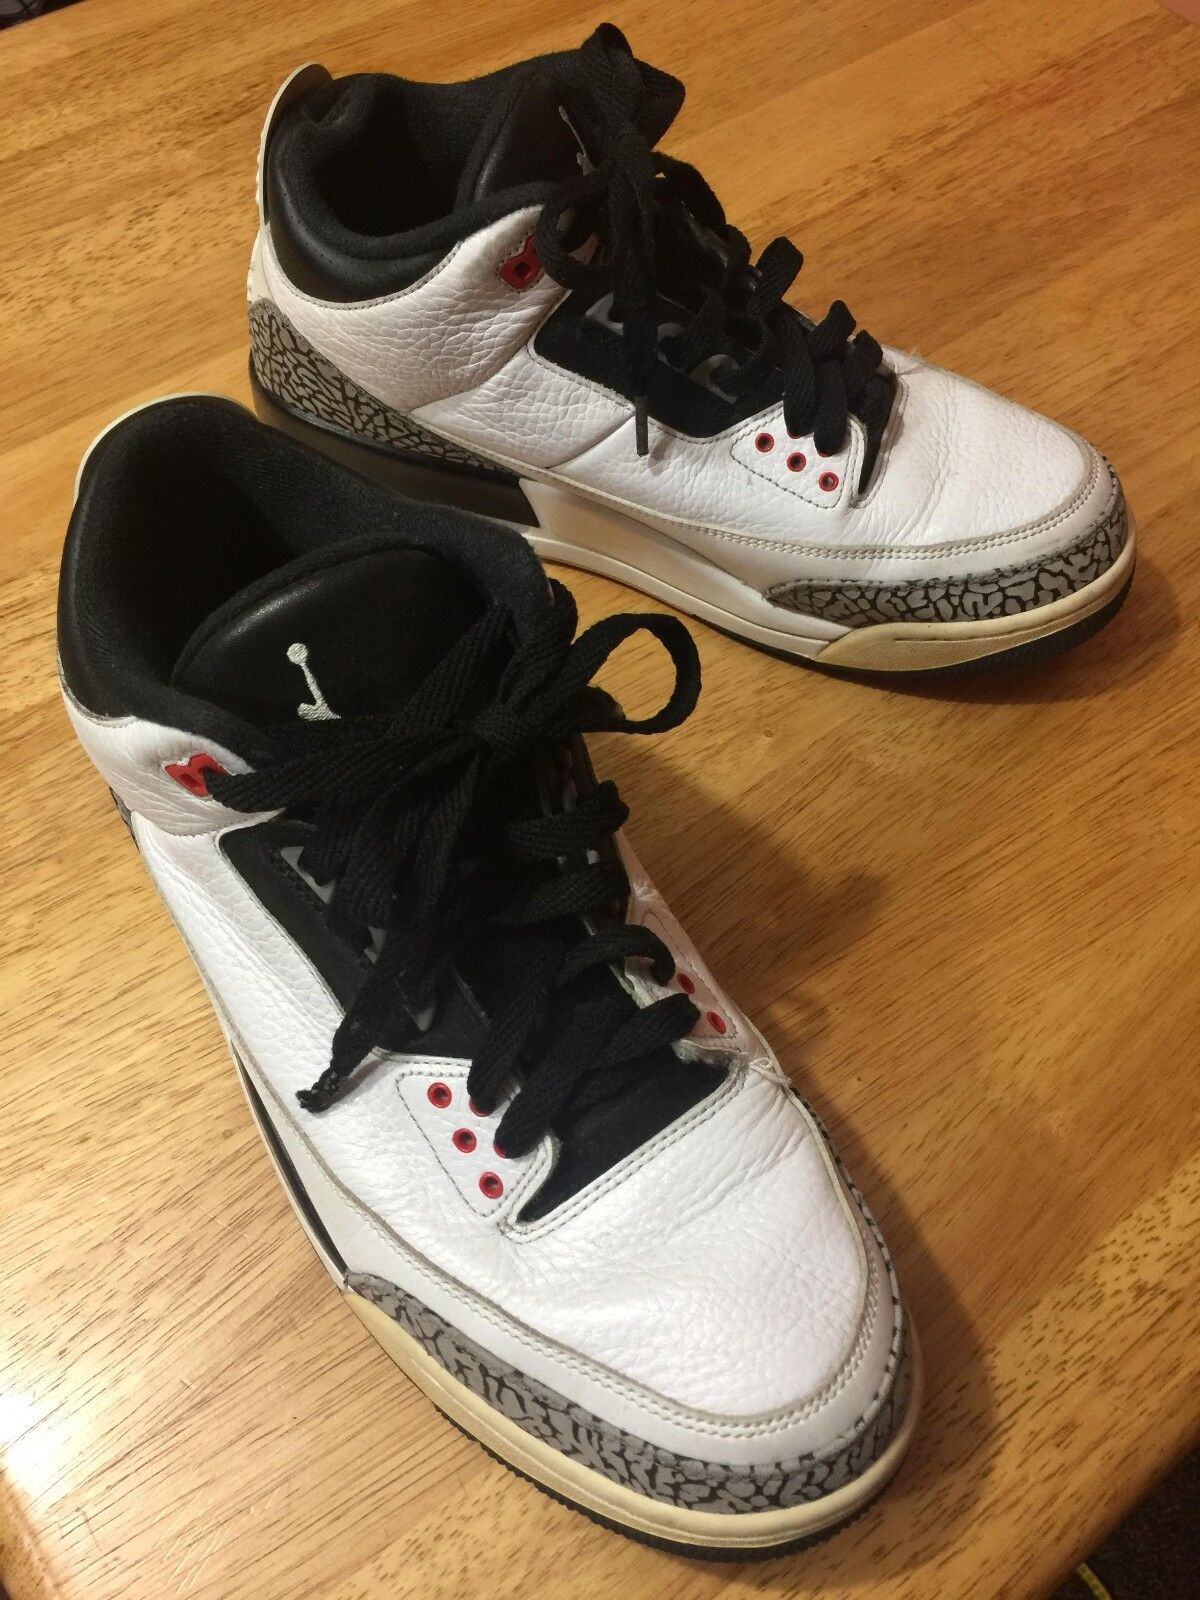 d6bba161c2 Nike Air Jordan 3 III Retro Infrared Black White Red Cement 136064-123 Size  11.5. Nike Air Max ...